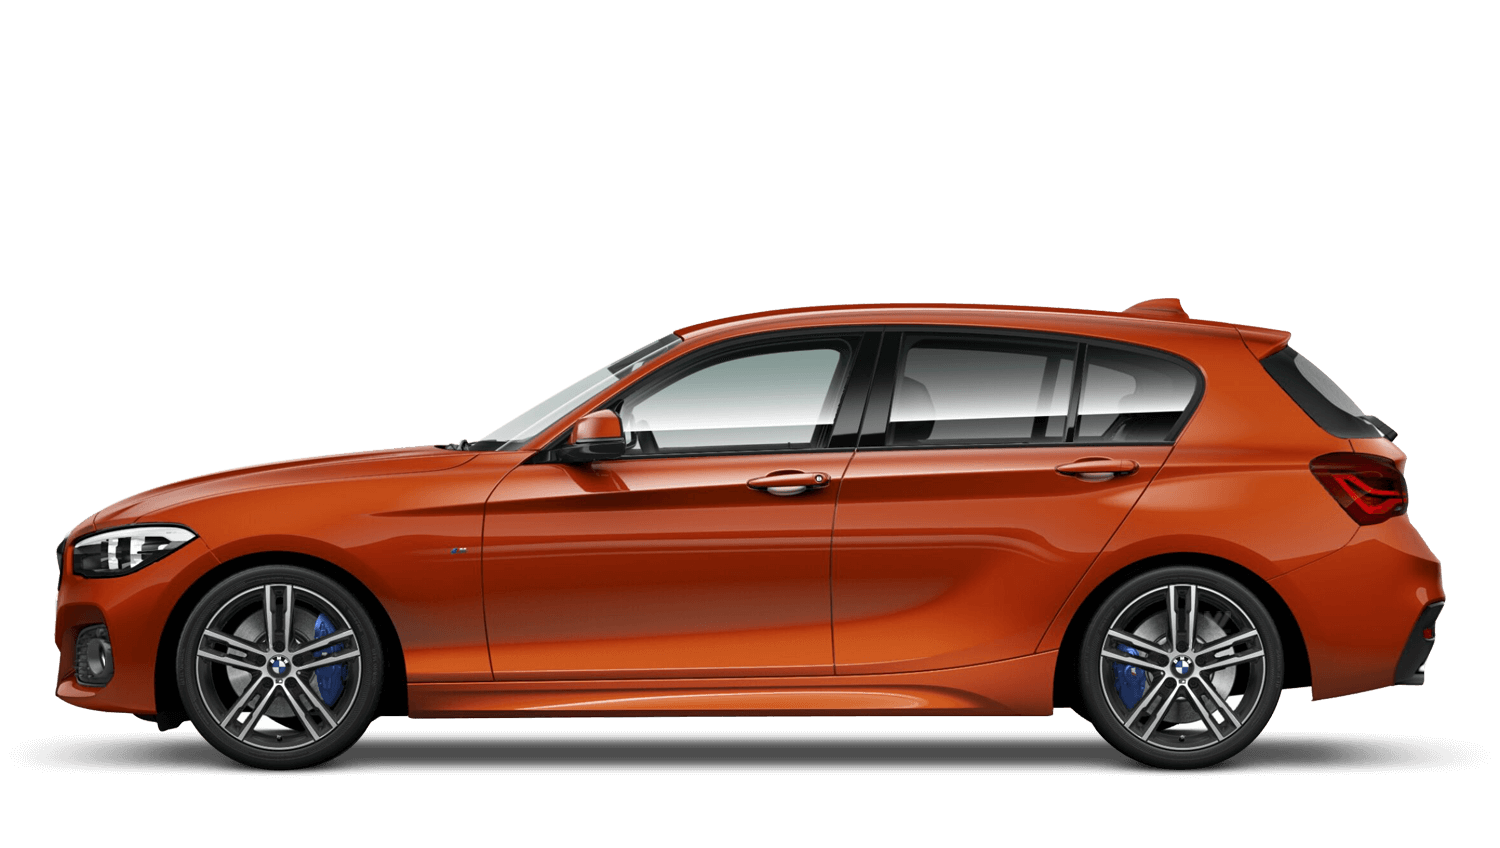 bmw 1 series 5 door m sport shadow edition finance. Black Bedroom Furniture Sets. Home Design Ideas